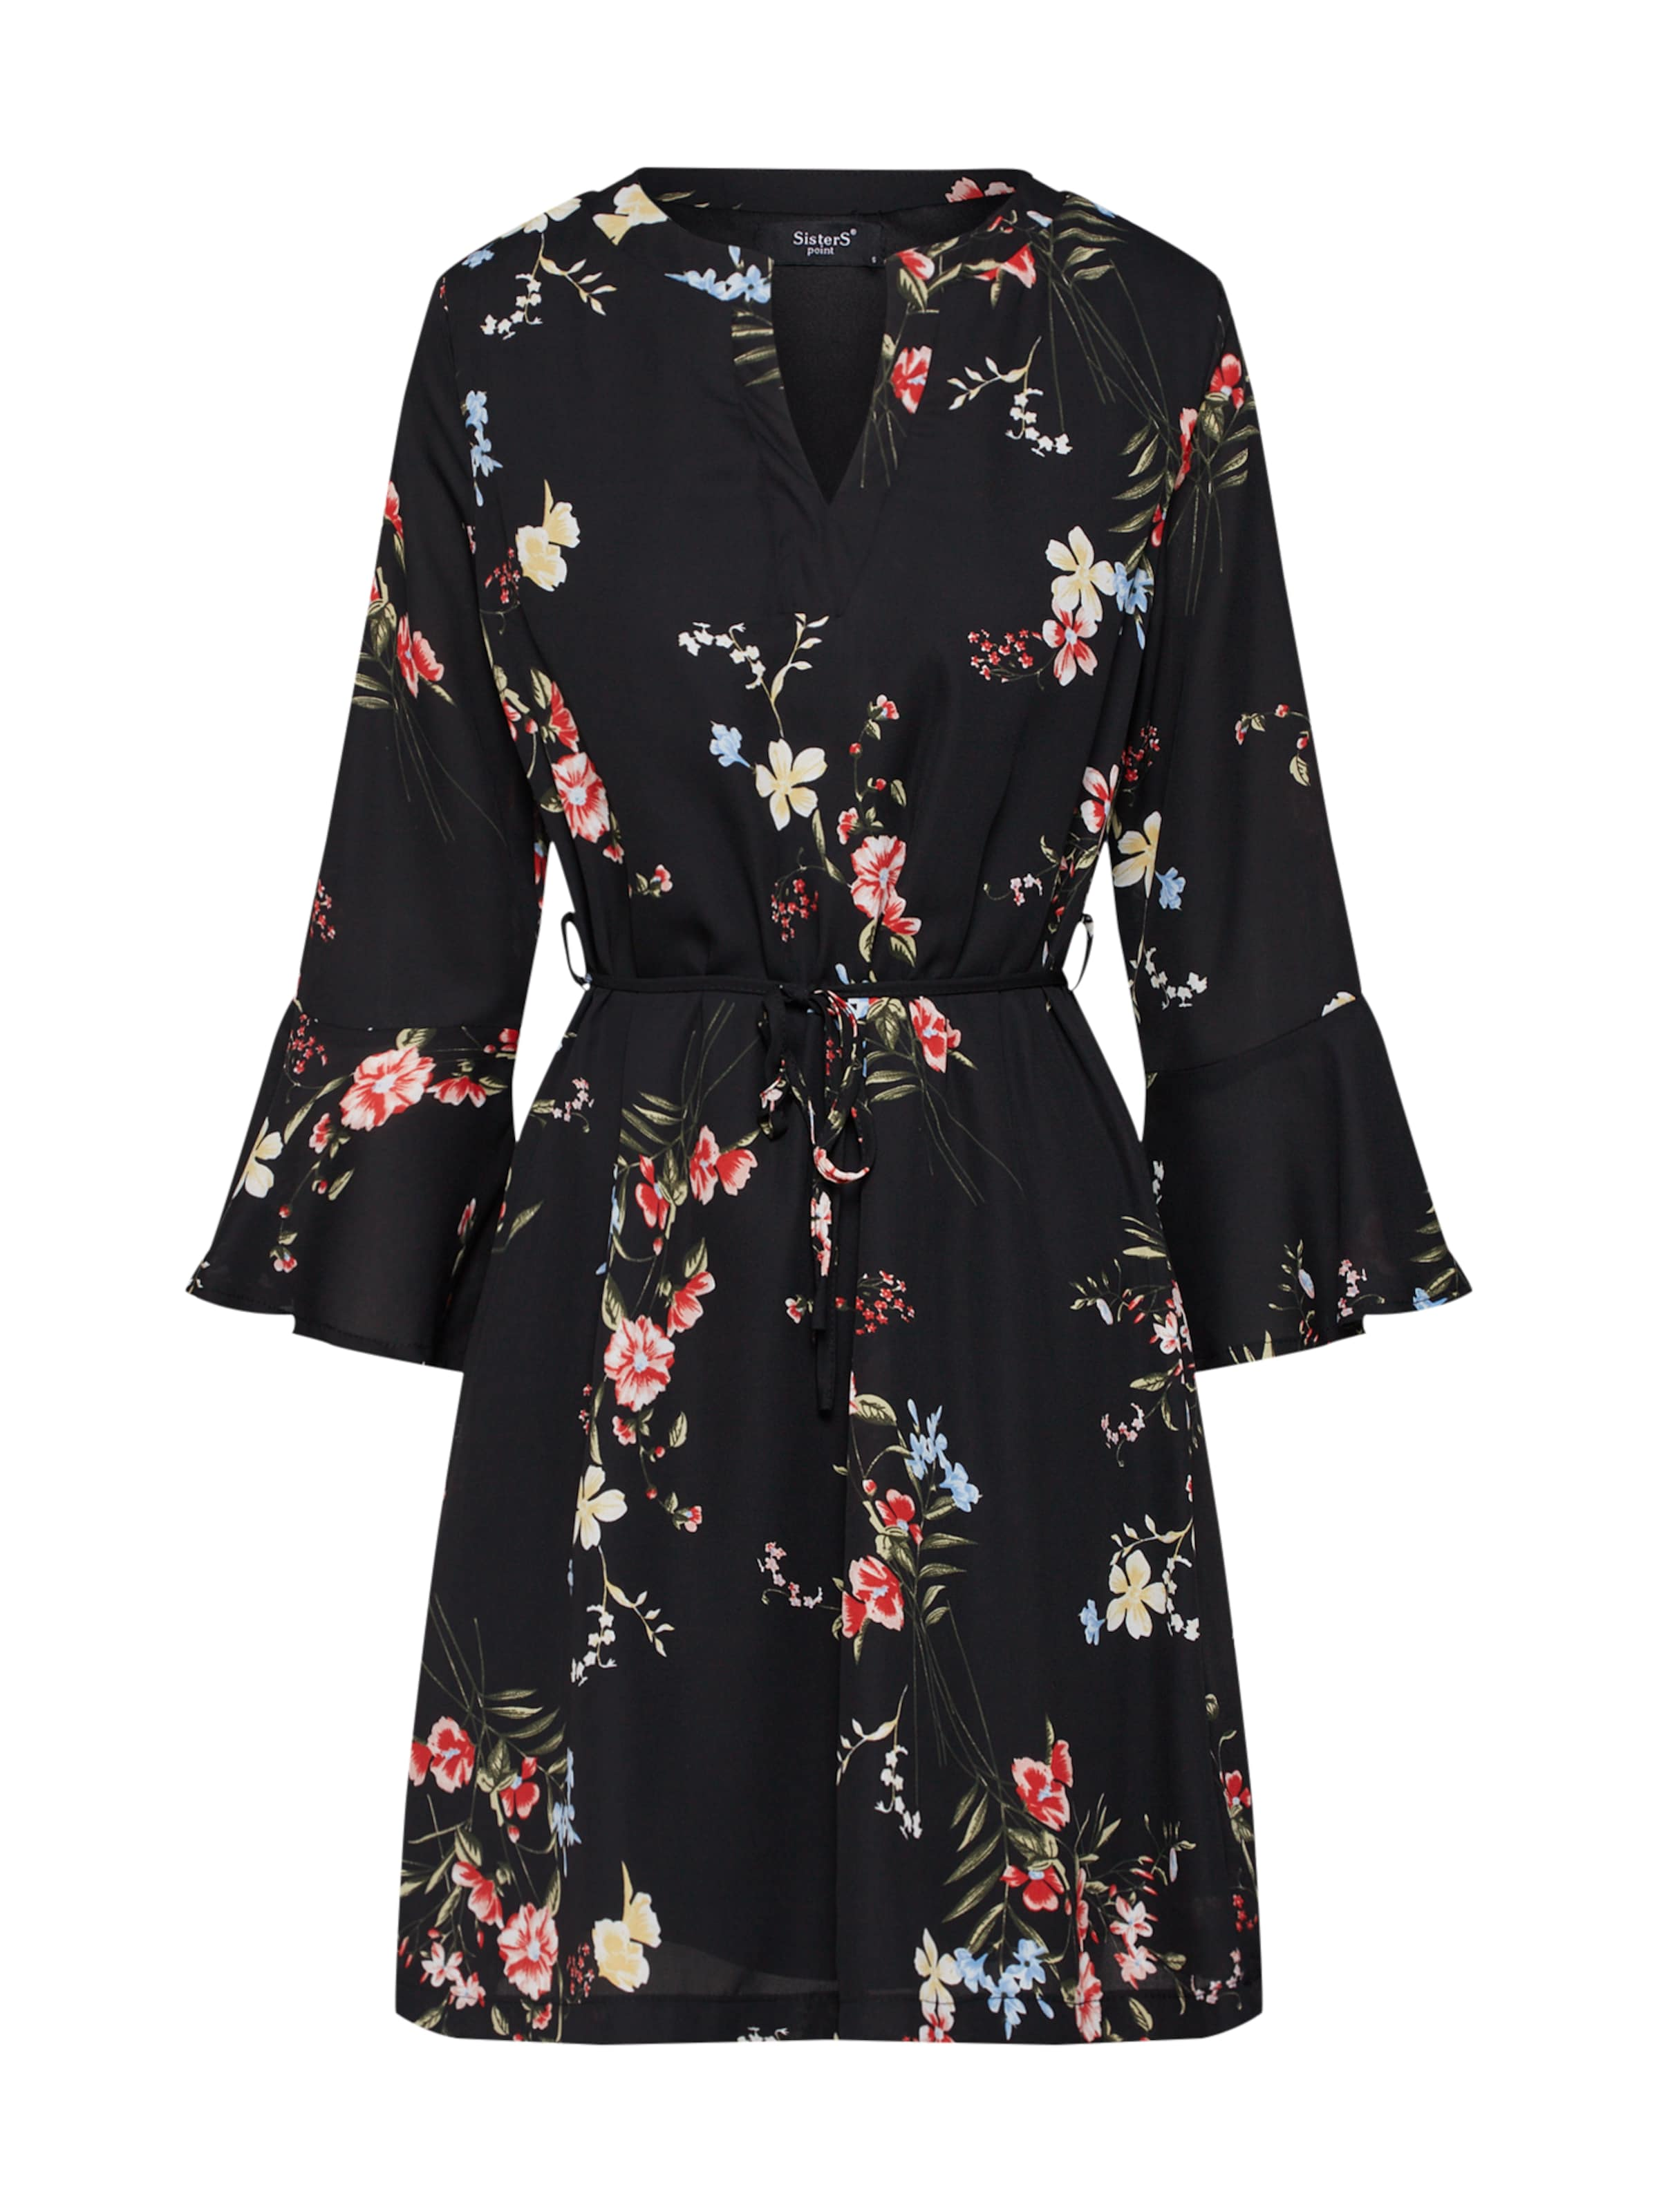 Noir Sisters 9' Point Robe 'glans En JauneVert wvmN08On